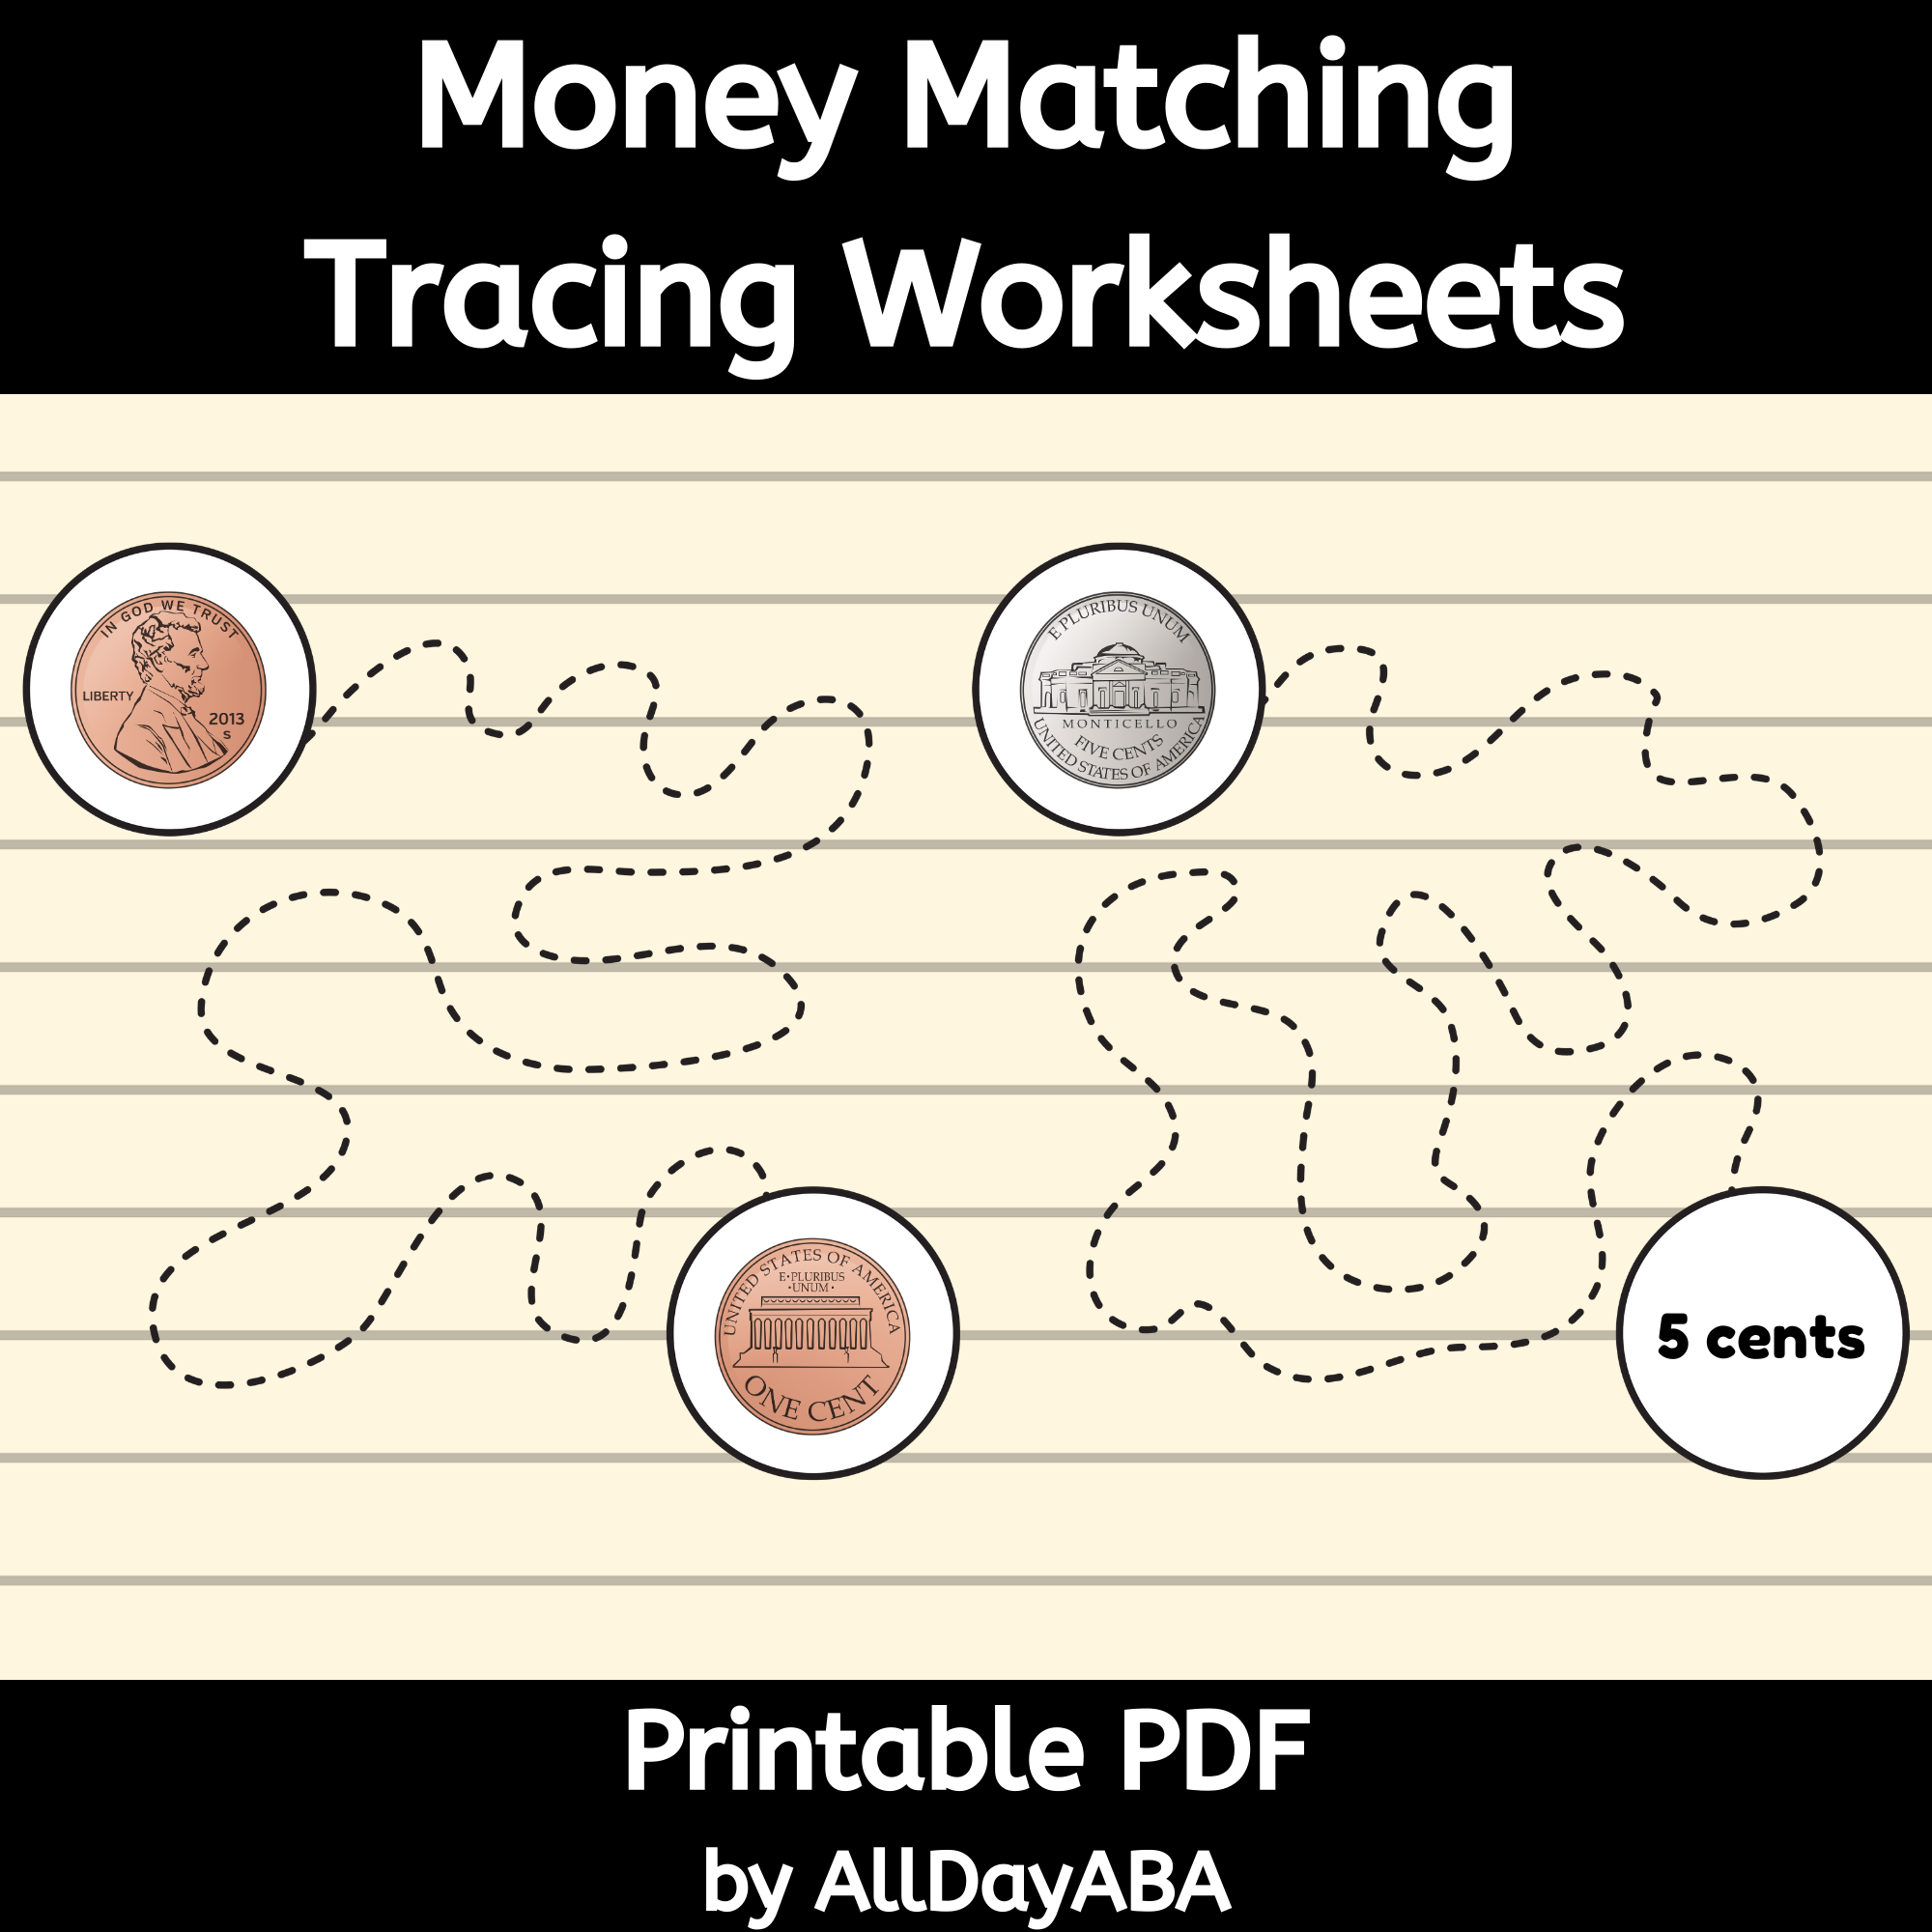 Money Matching Tracing Worksheets